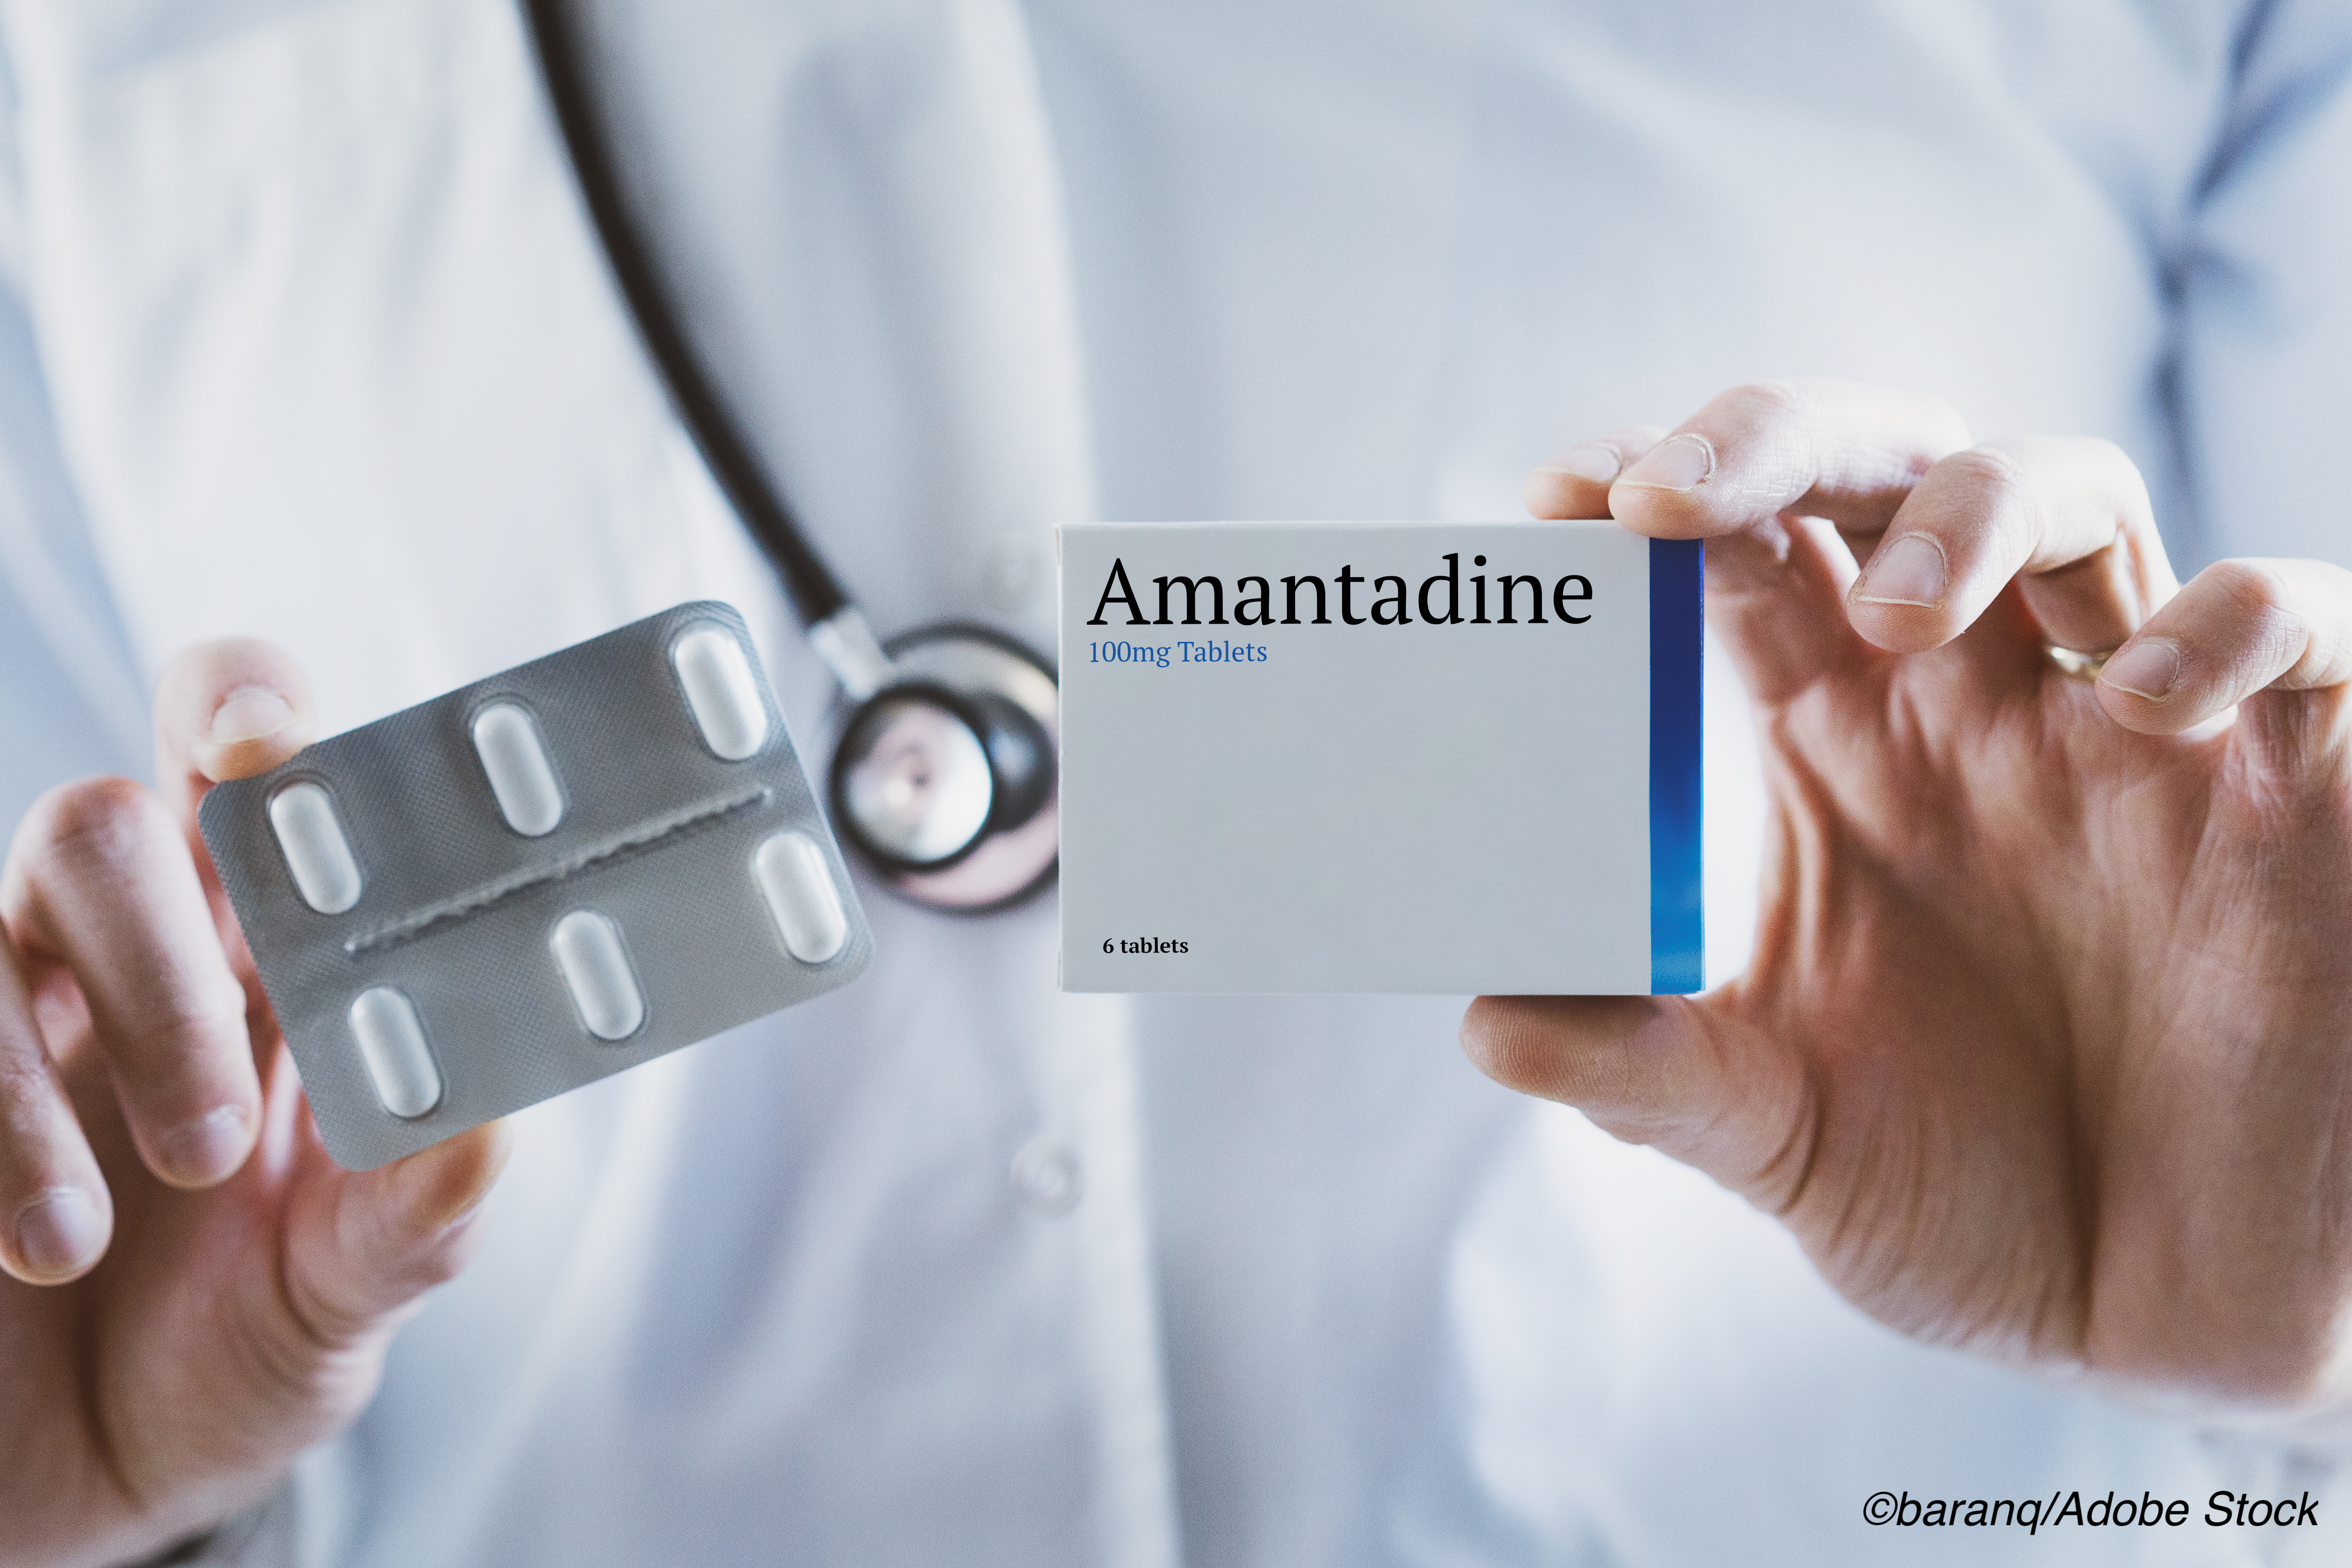 FDA Approves Oral Amantadine to Treat 'Off' Edisodes in PD